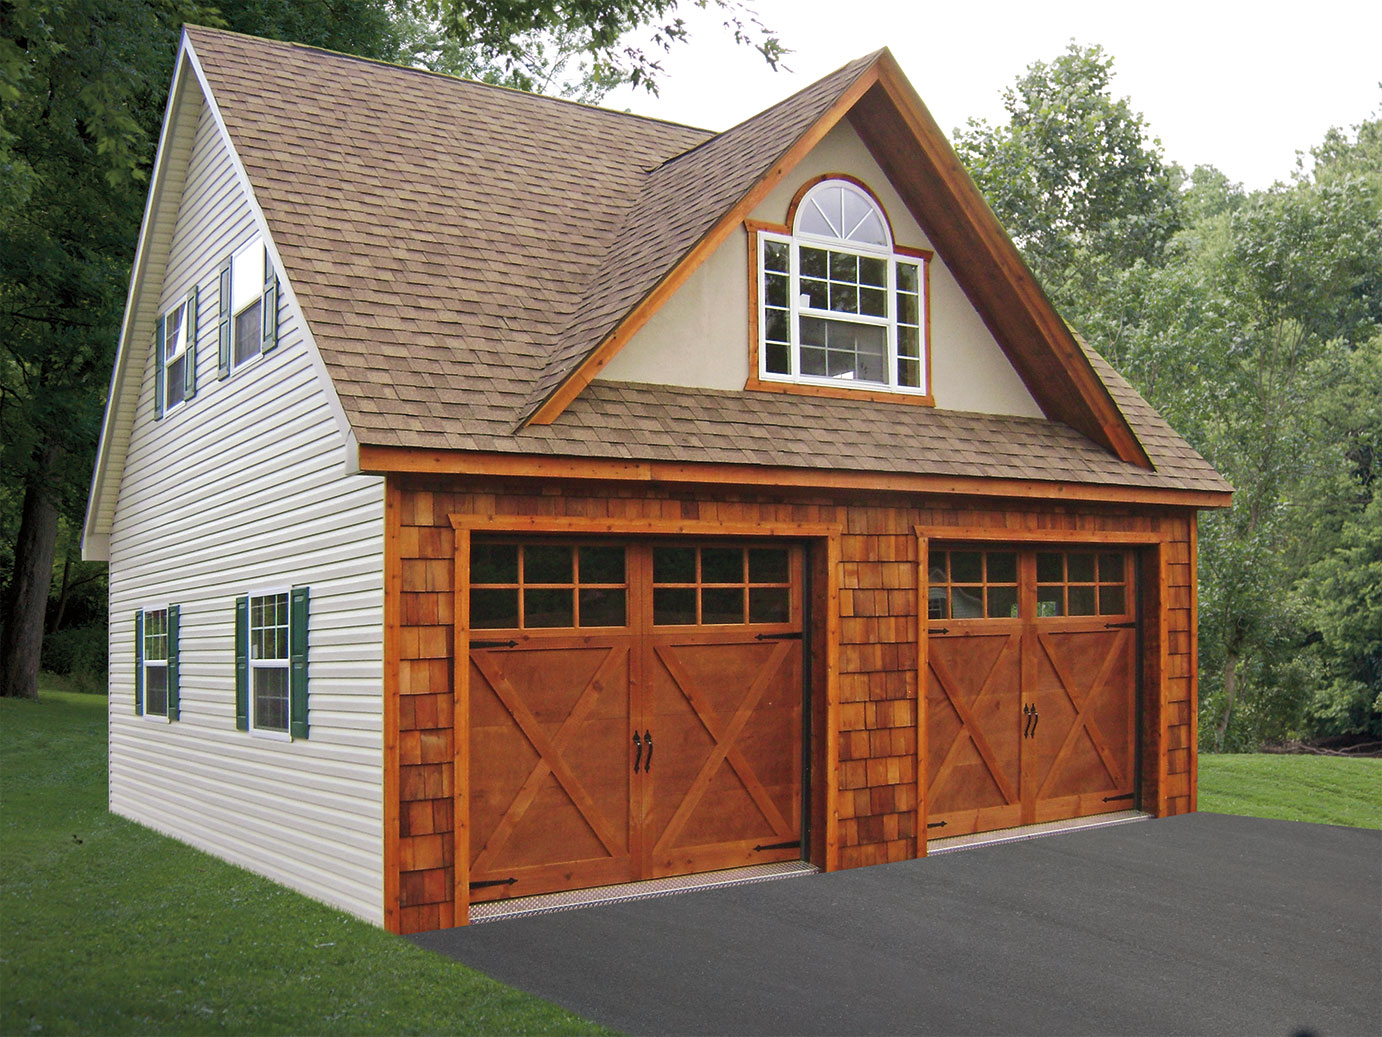 Built on site custom amish garages in oneonta ny amish for One car garage kit with loft